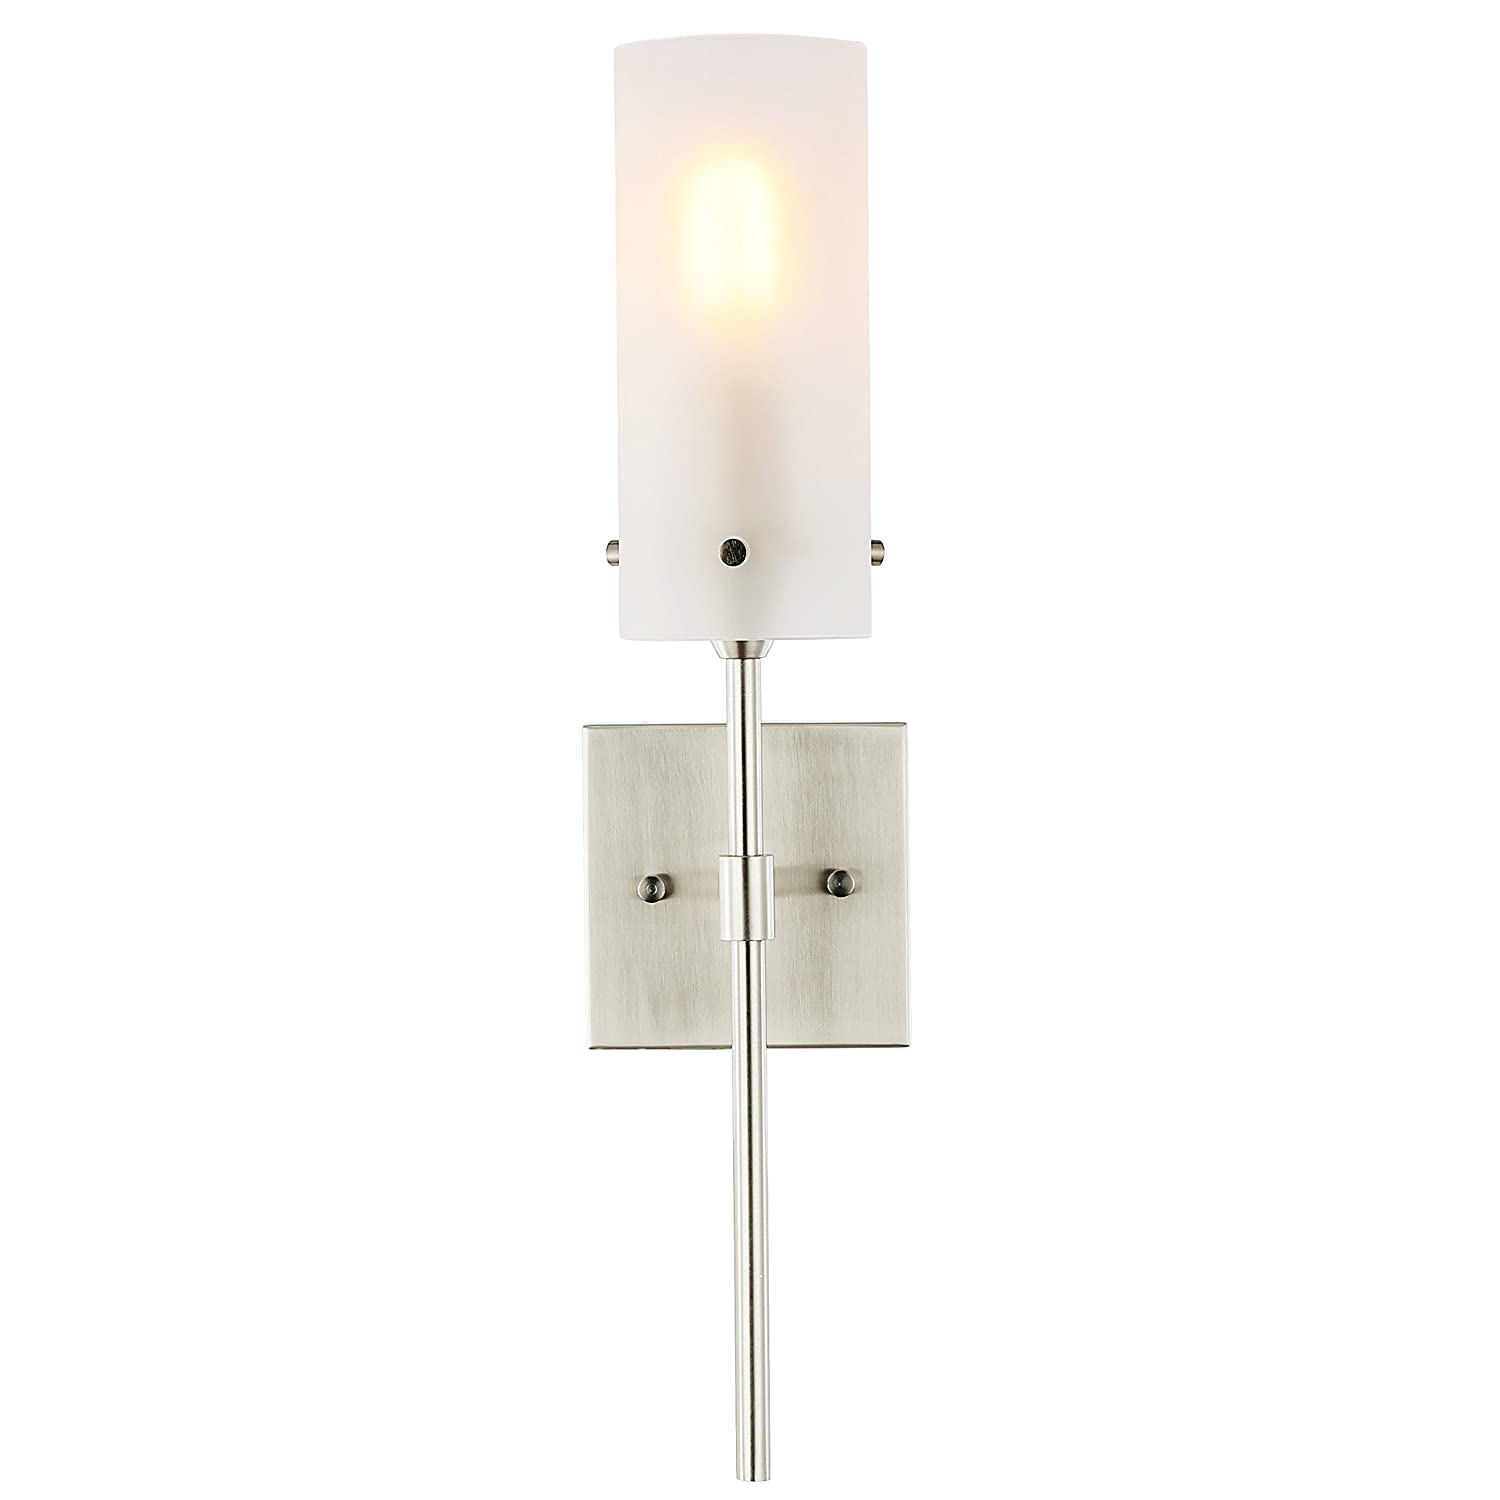 LS-W238-SN-FR Contemporary Minimalist Modern Lighting Fixture Light Society Montreal Cylindrical Wall Sconce Satin Nickel with Frosted Glass Shade